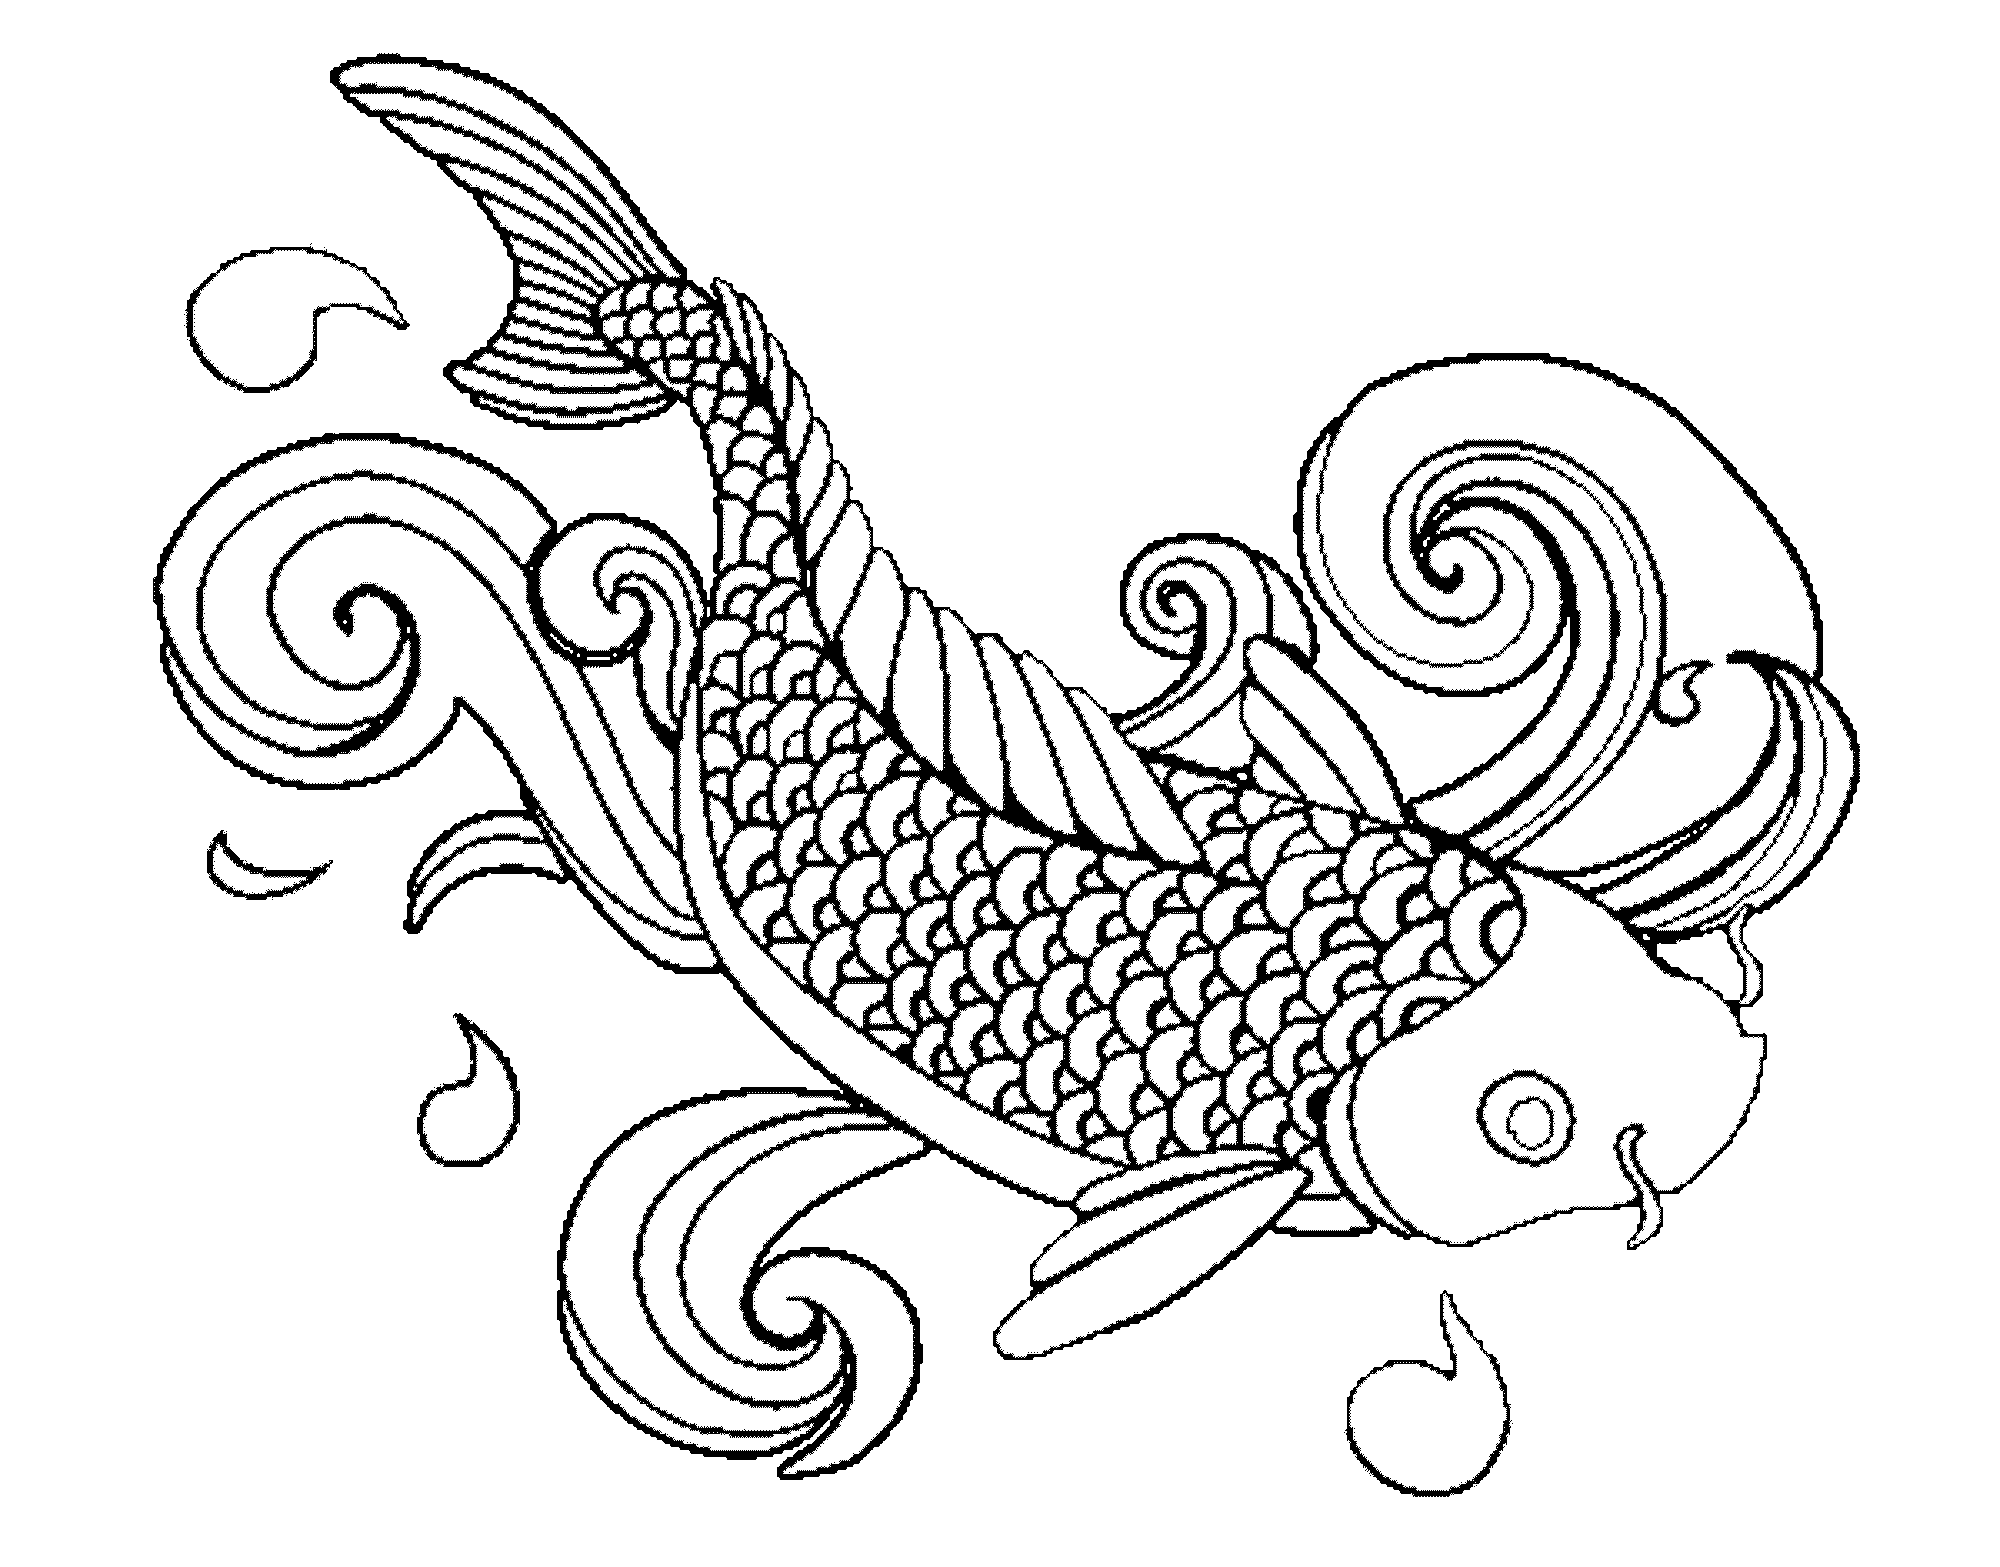 Printable coloring pages fish - Download